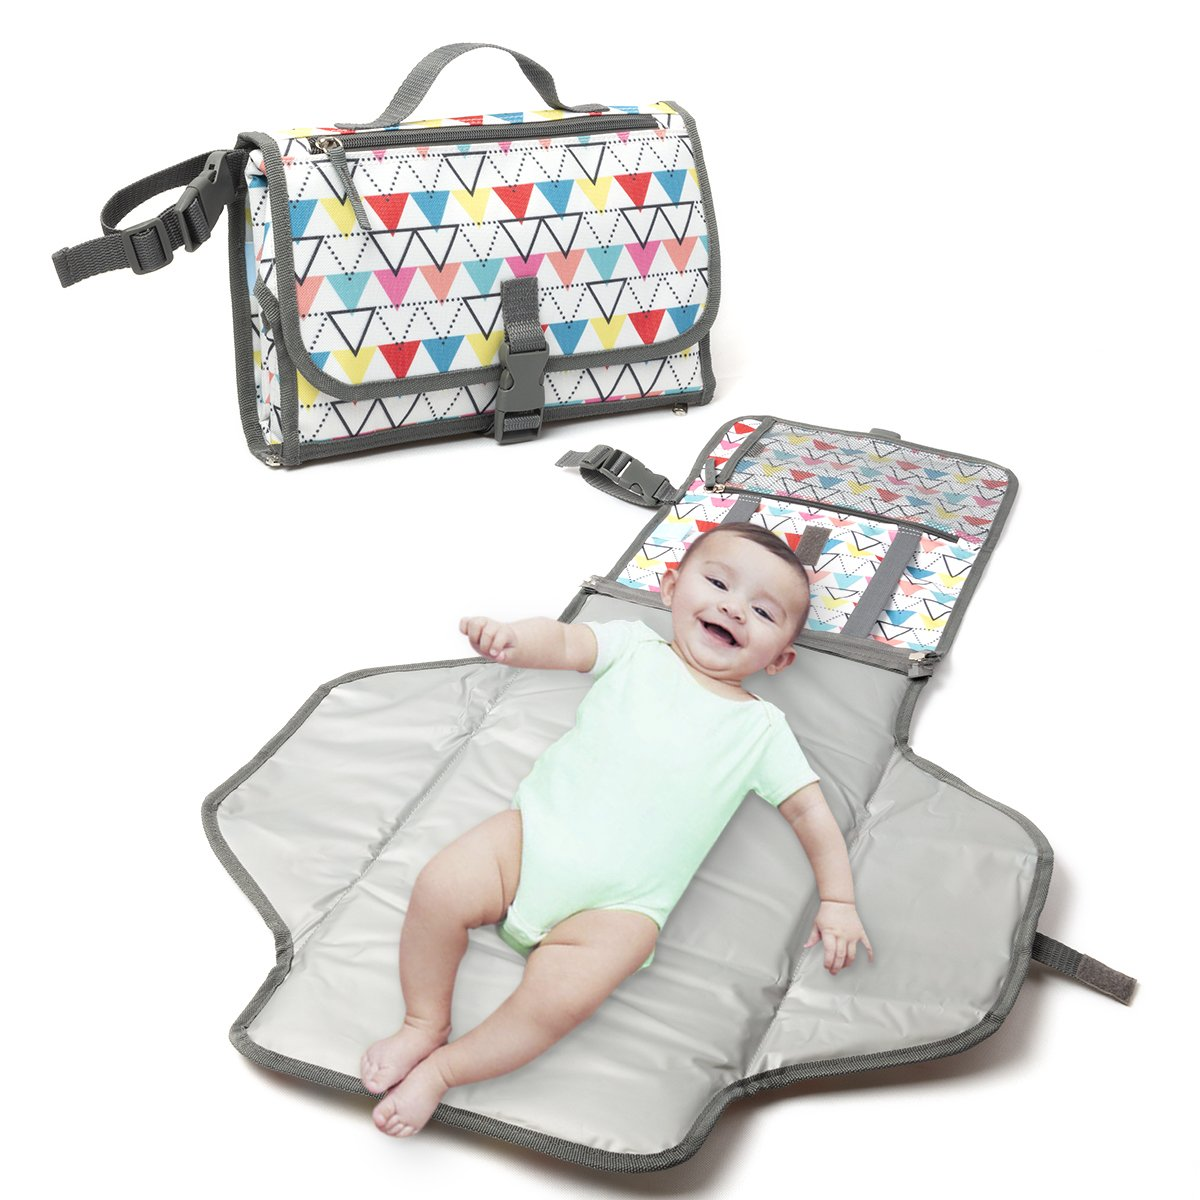 Changing Pad - Baby Changing Mat, Portable Travel Changer Station, Waterproof Diaper Pad, Diaper pouch, Folding Diaper Clutch, Travel Kit for Baby, Small Detachable Wipeable mat with Pockets(Triangle)